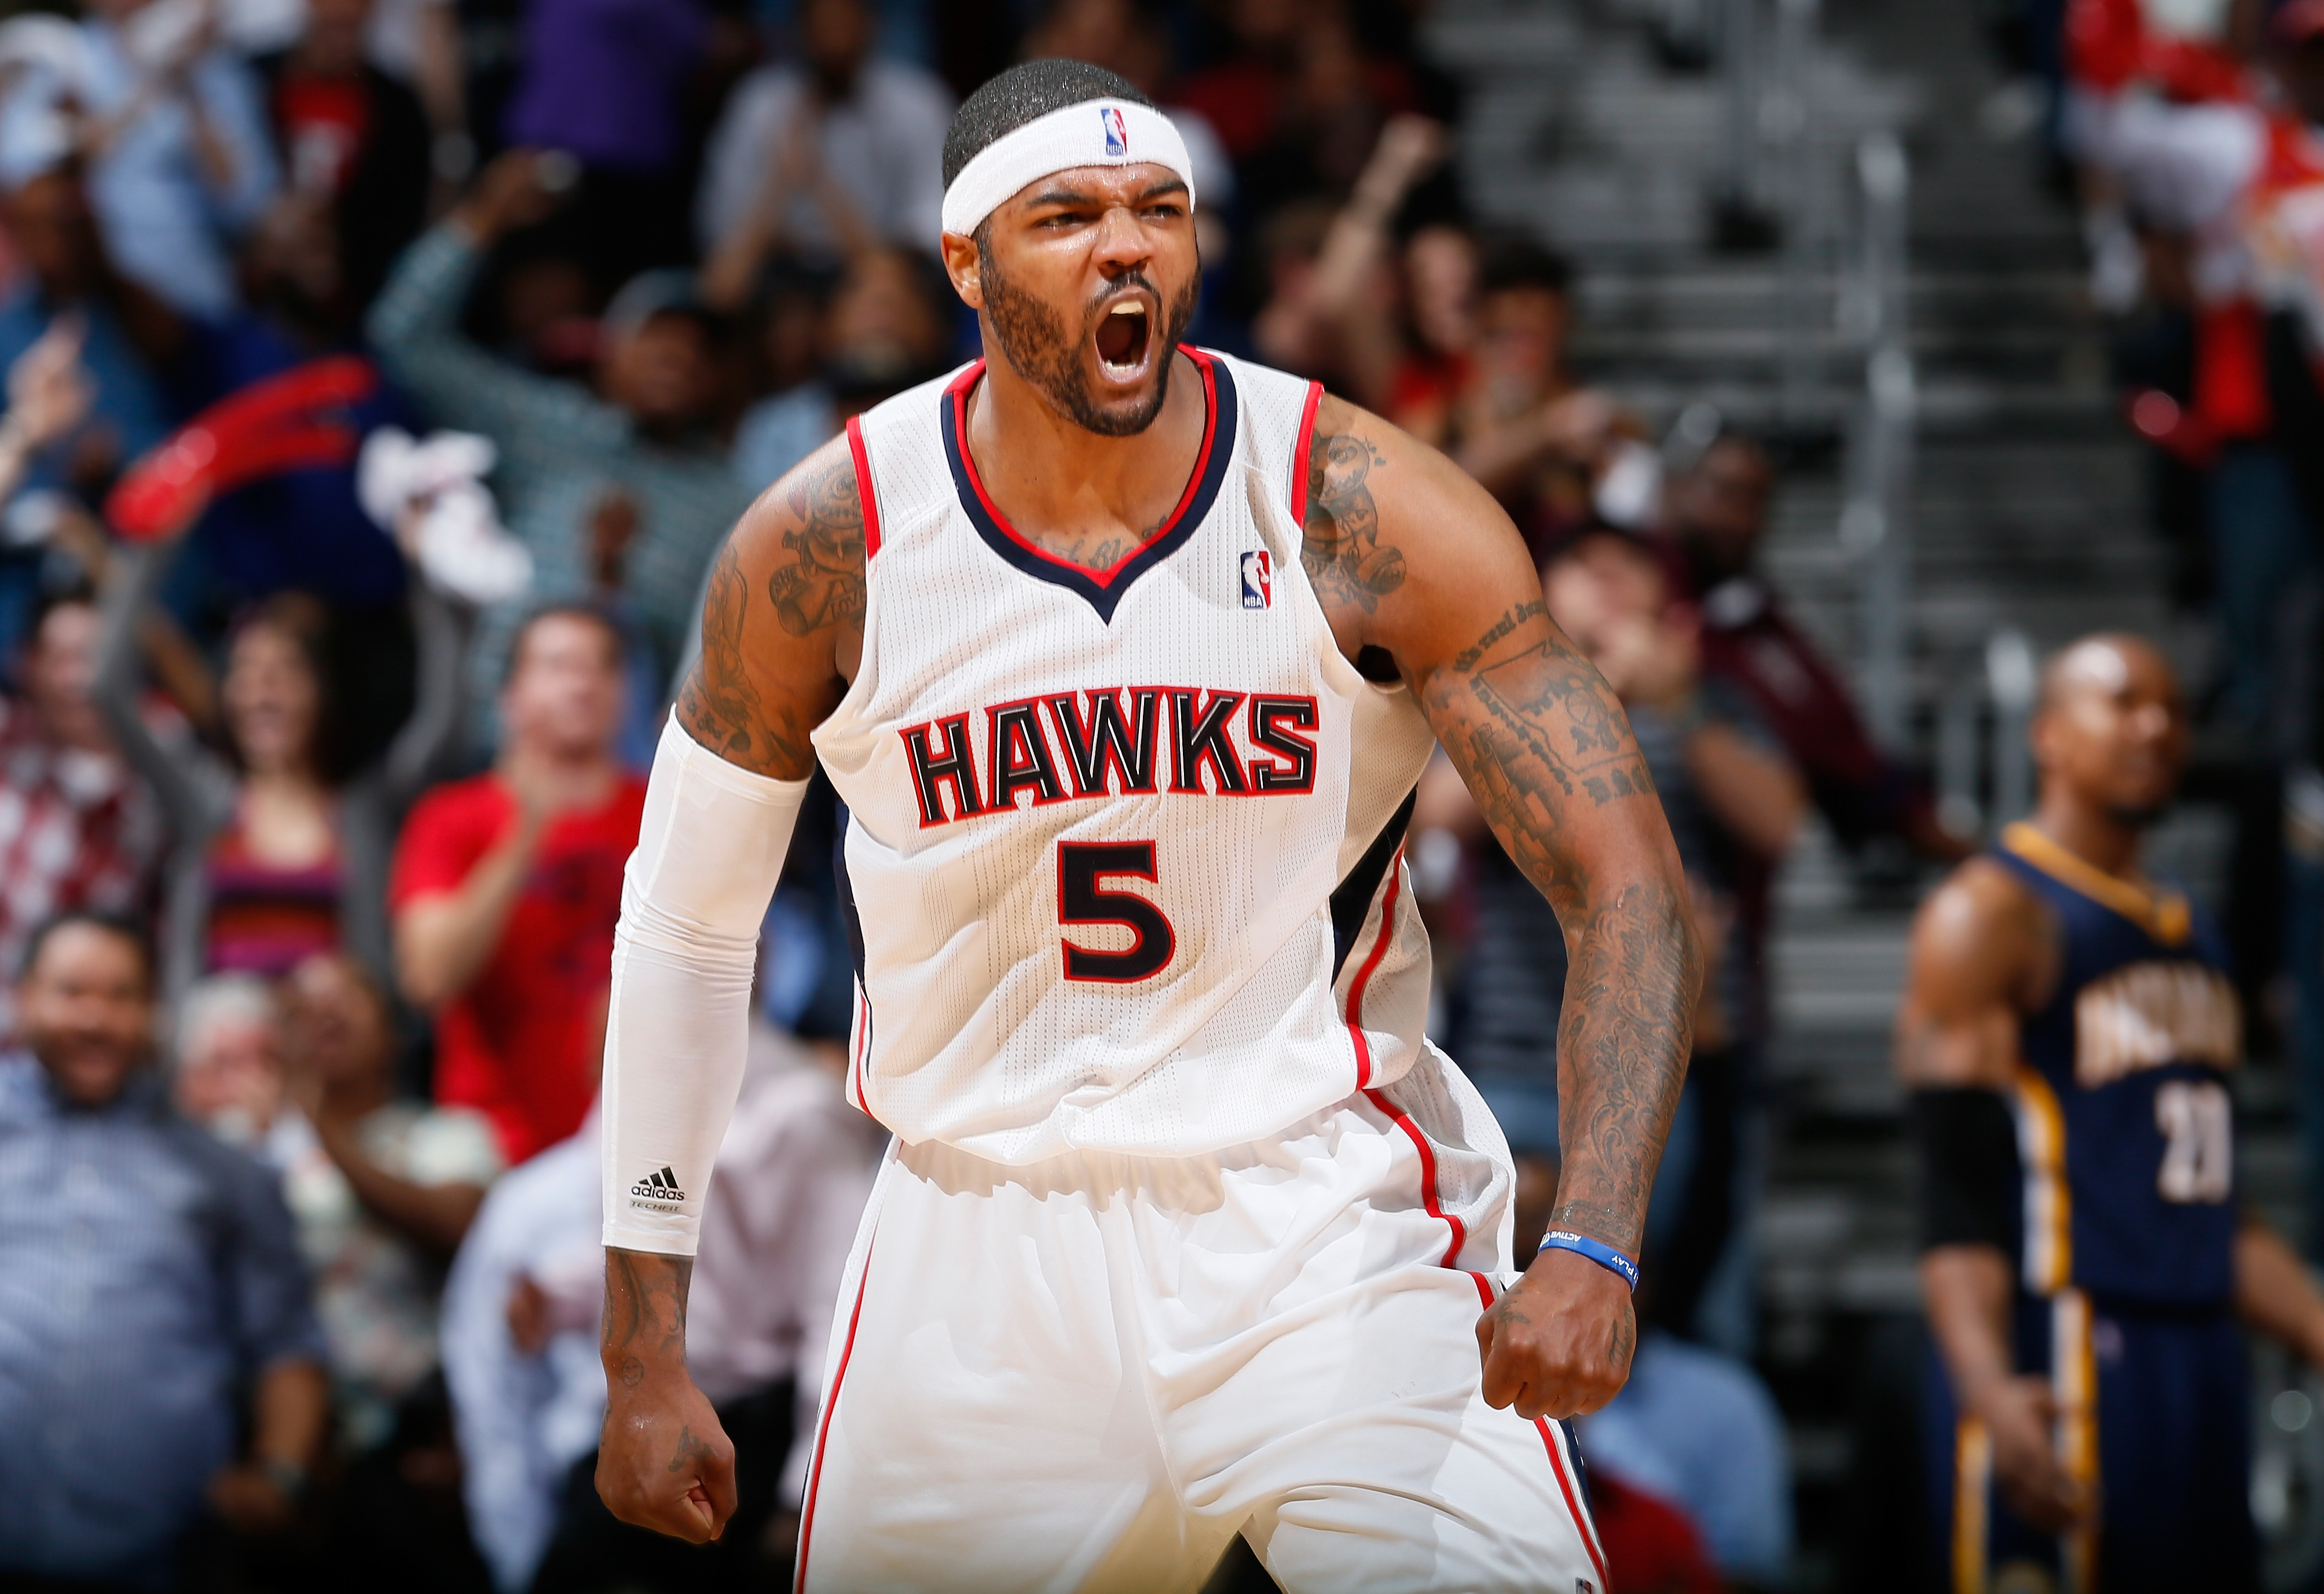 Josh Smith celebrates after making a shot during a Hawks game